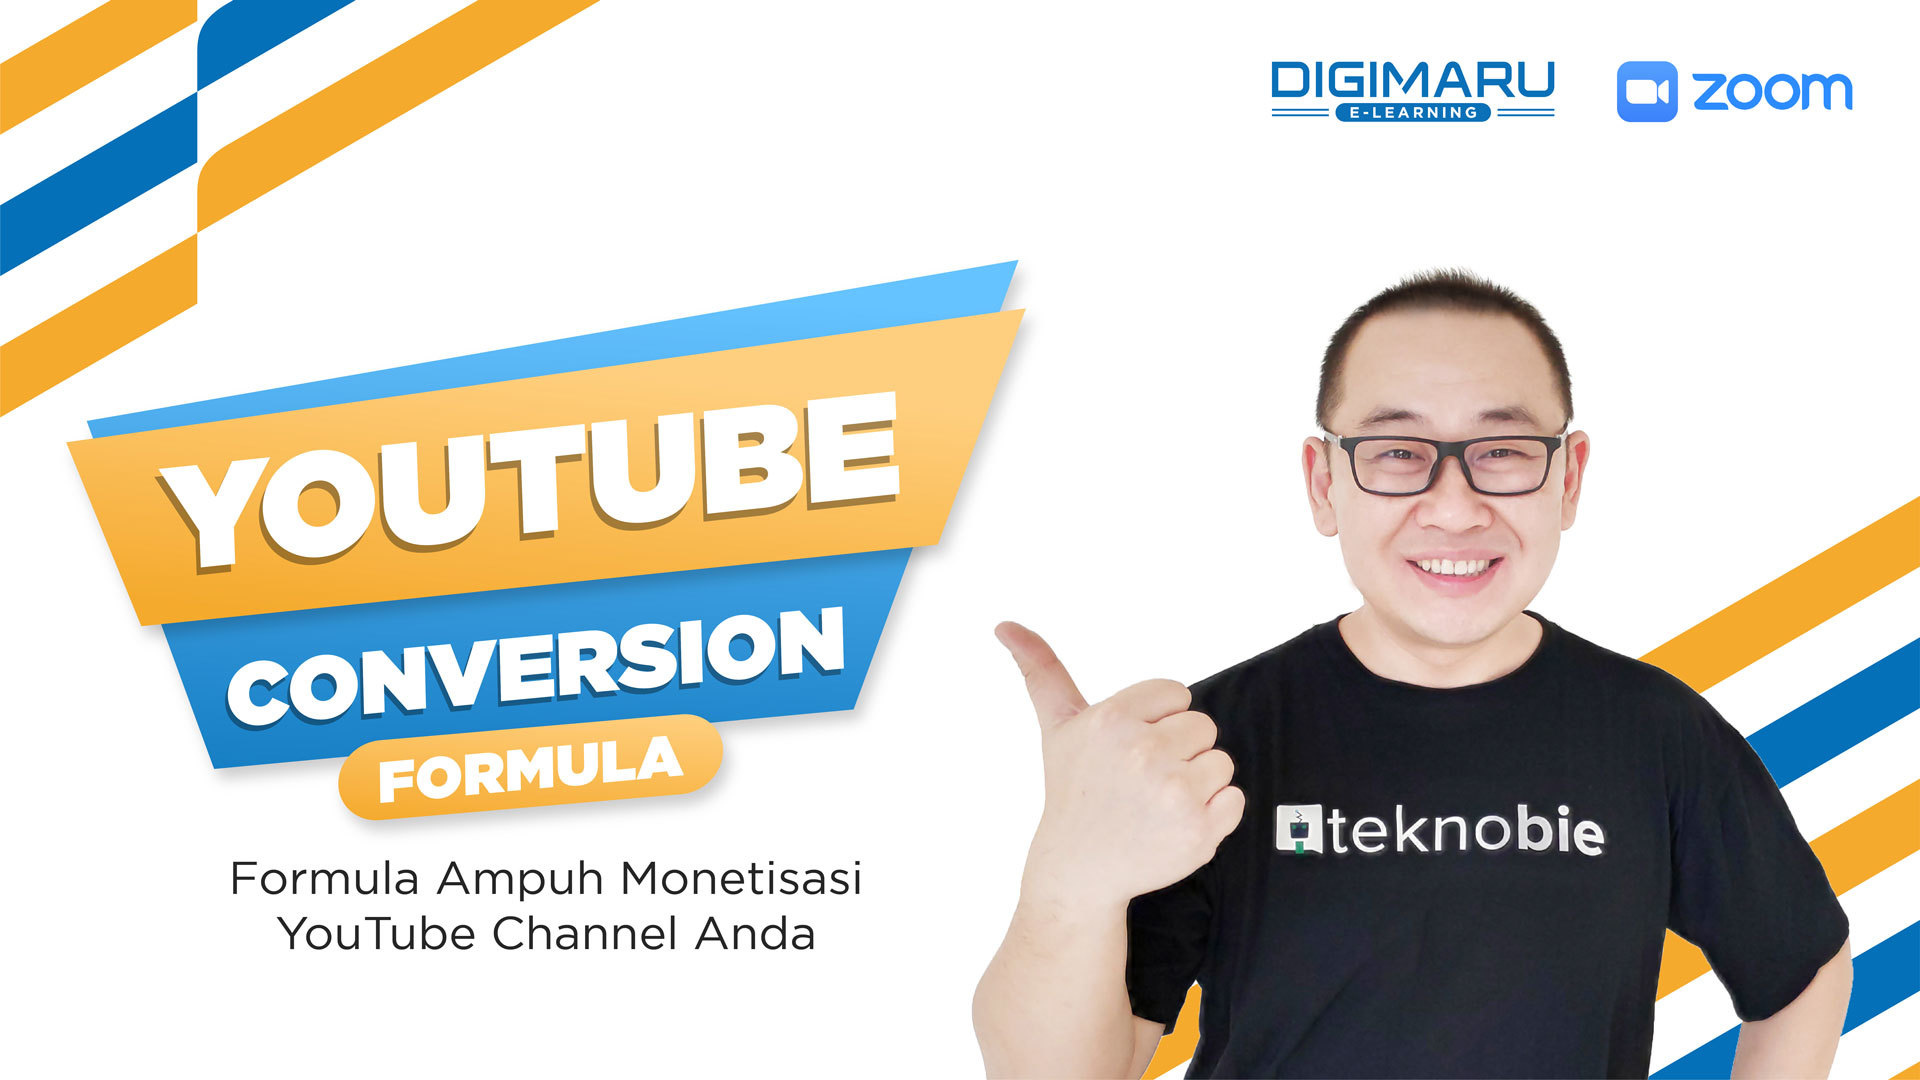 Youtube Conversion Formula